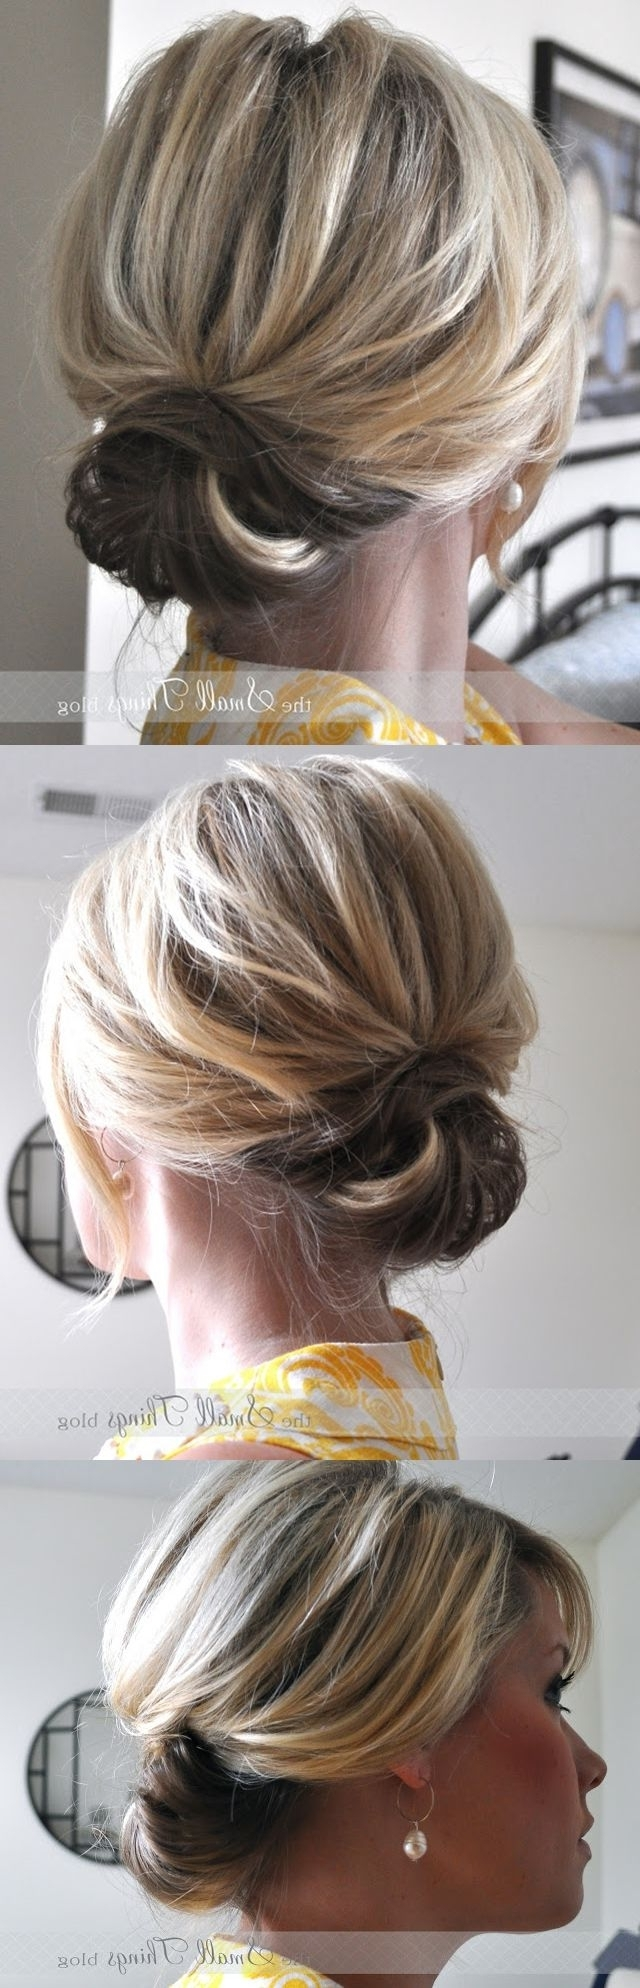 Hairstyle Ideas, Wedding Pertaining To Current Tied Up Wedding Hairstyles For Long Hair (View 9 of 15)